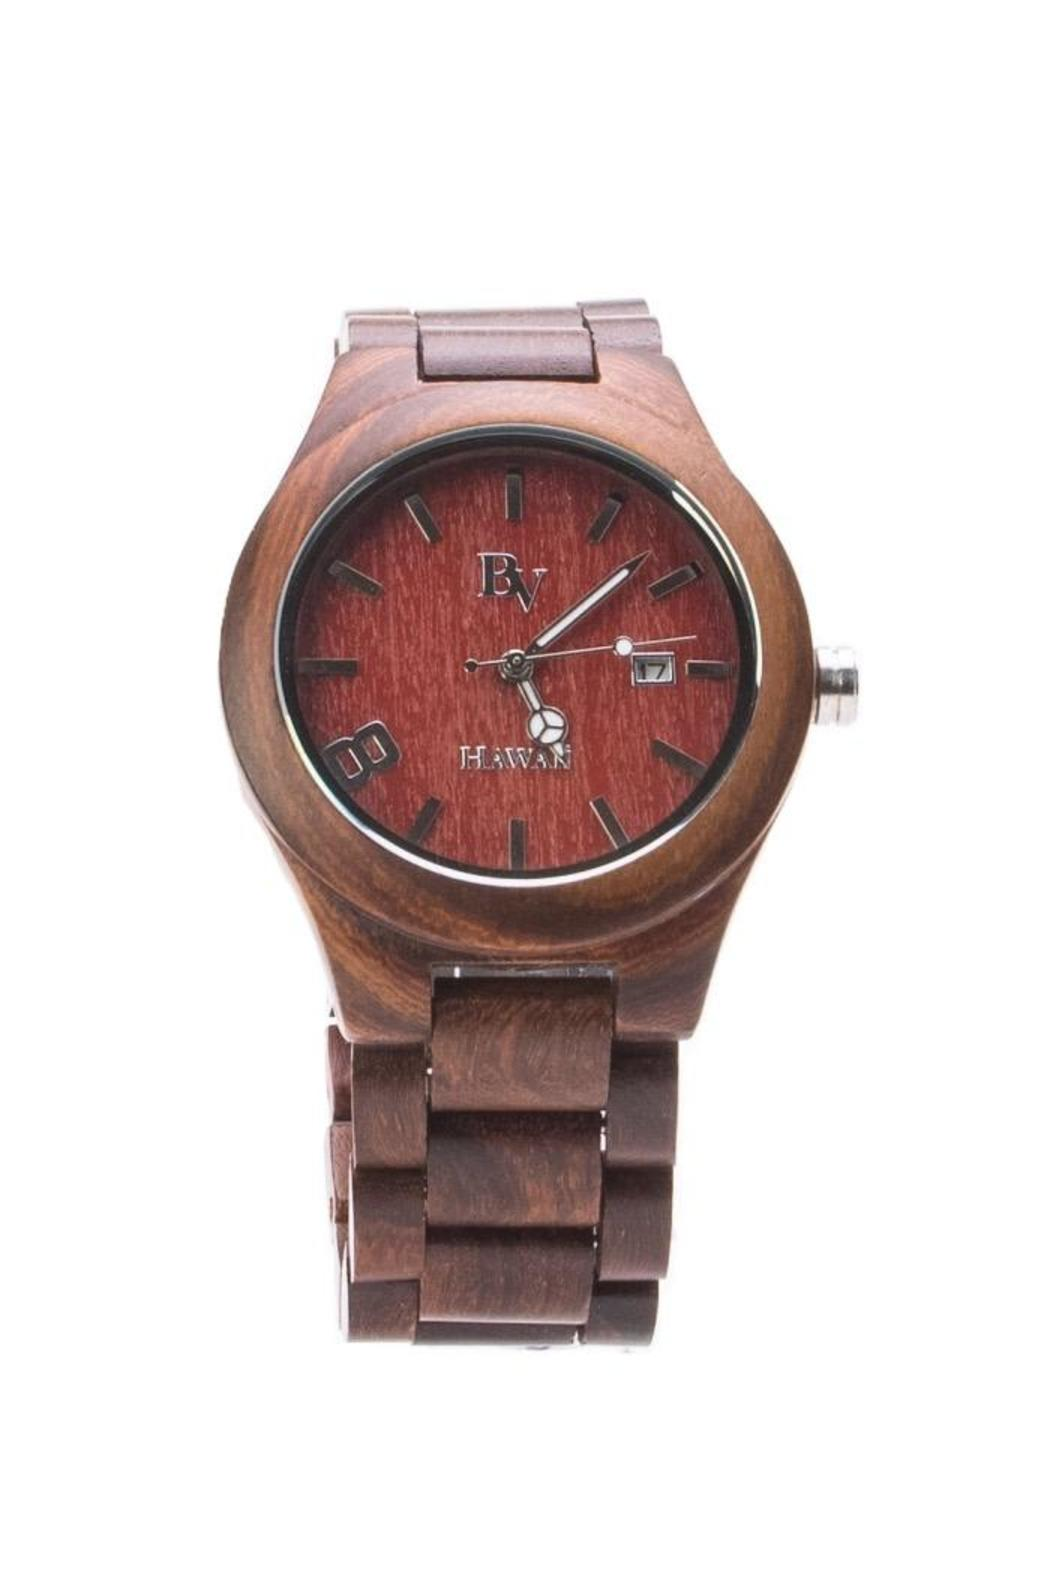 in that too other sandalwood red come watches our and girl stage from woodie geek watch i each about to a wrist jonathan dsc but specs just had domestic liking clean were awkward friends uncategorized feelings shy